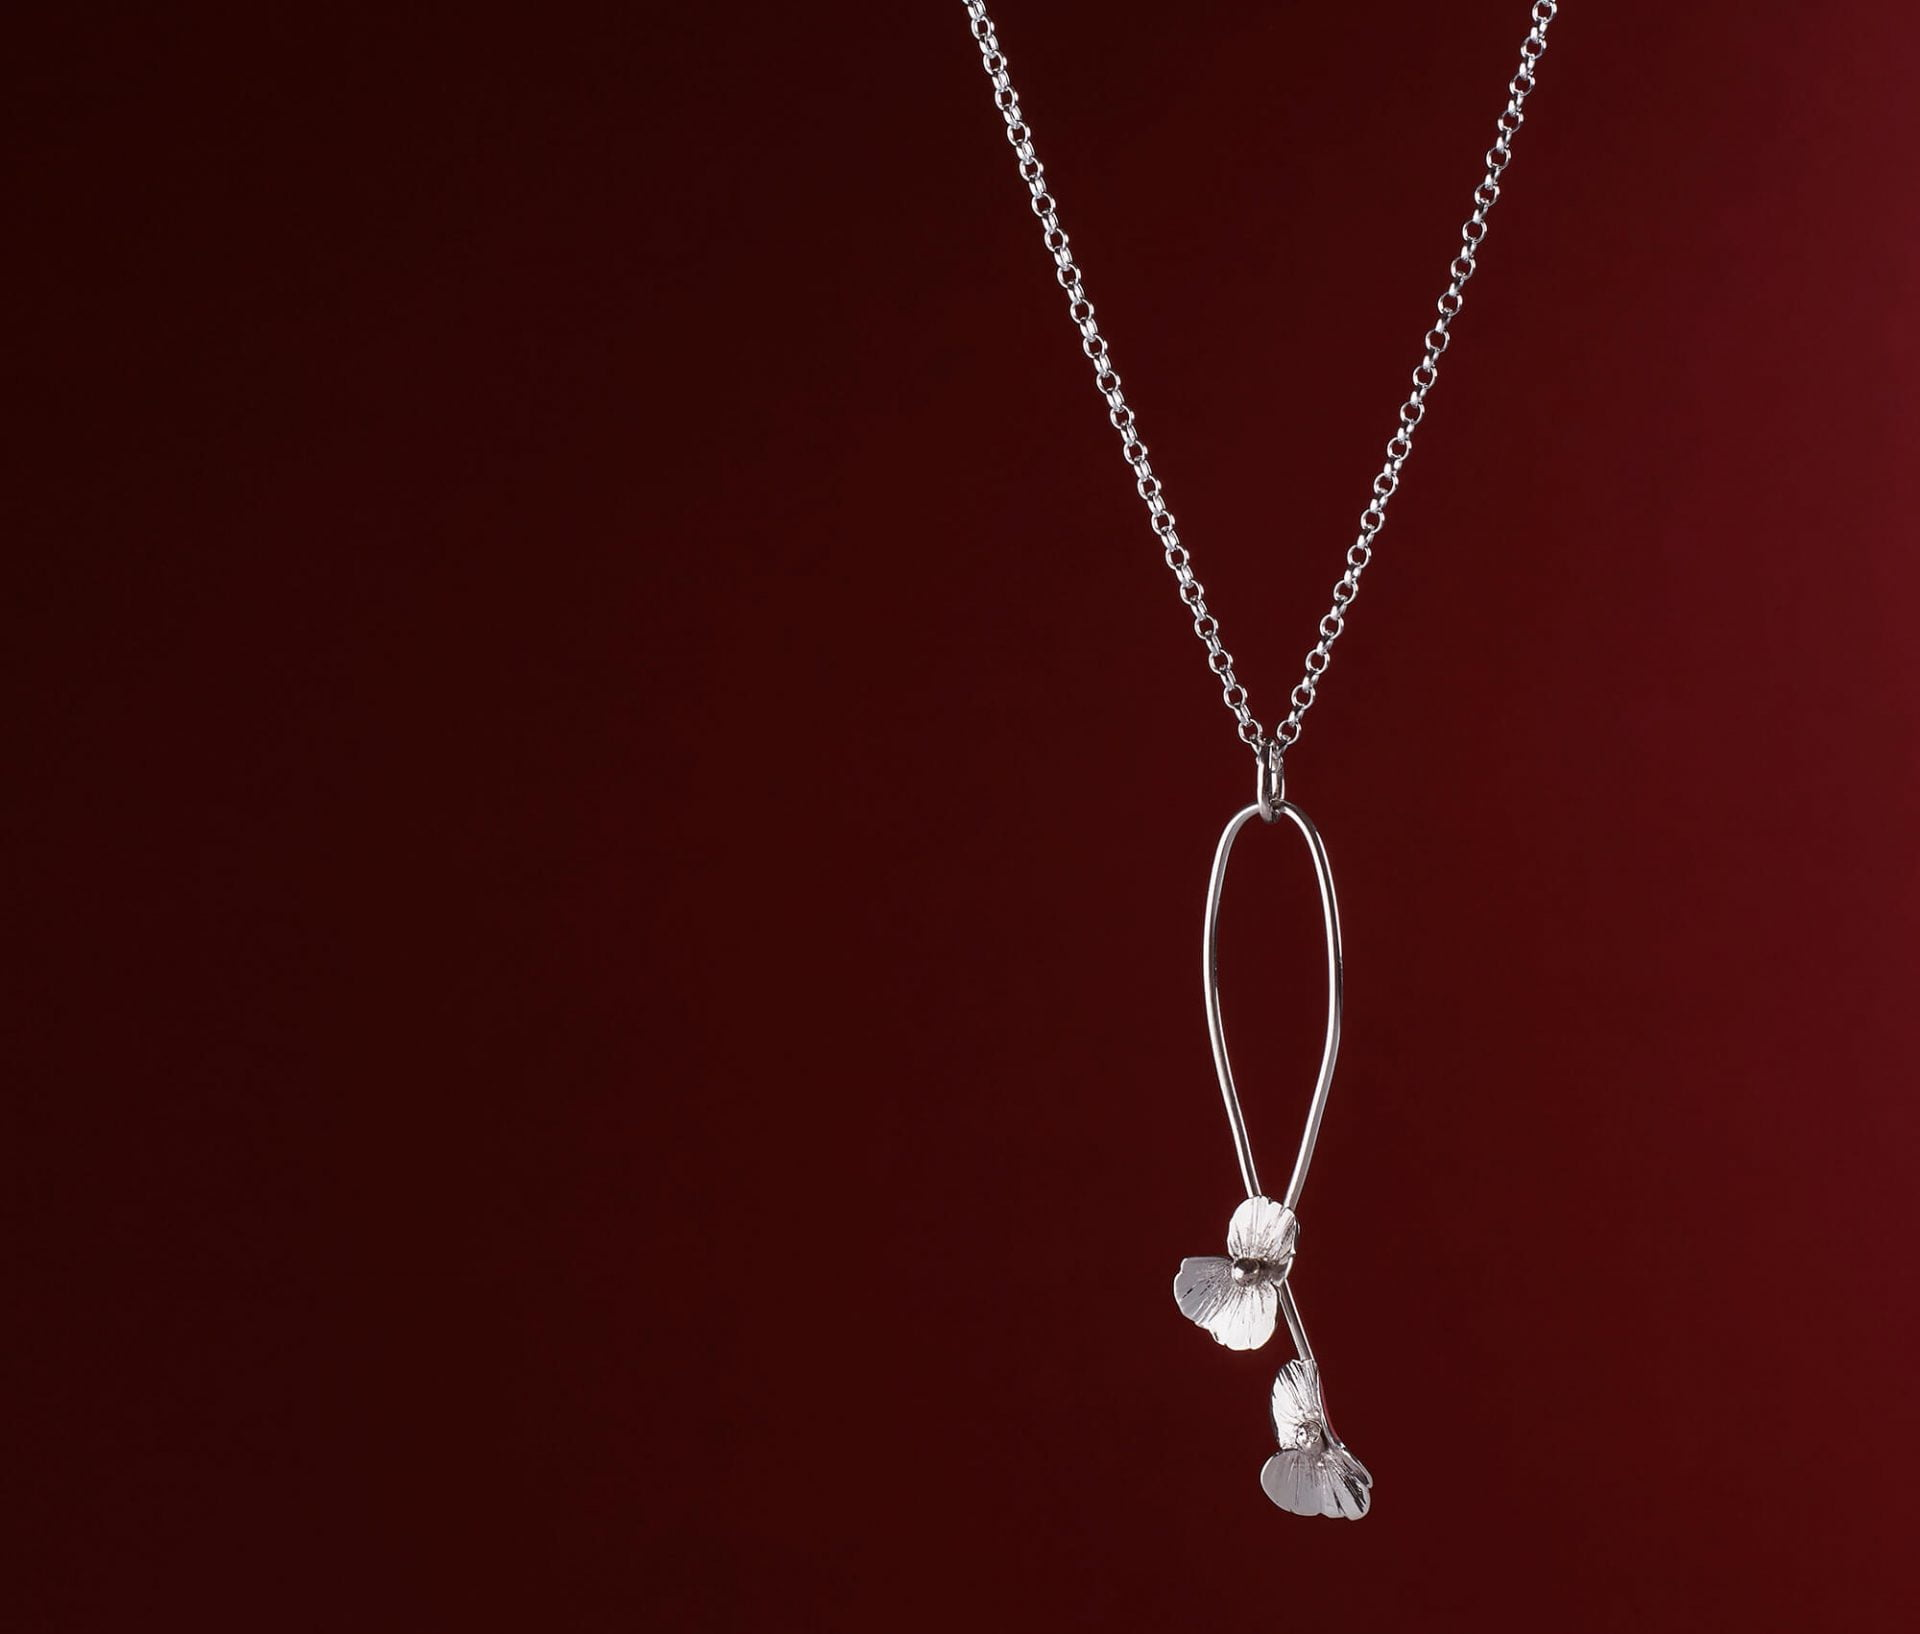 Jewellery necklace product photography